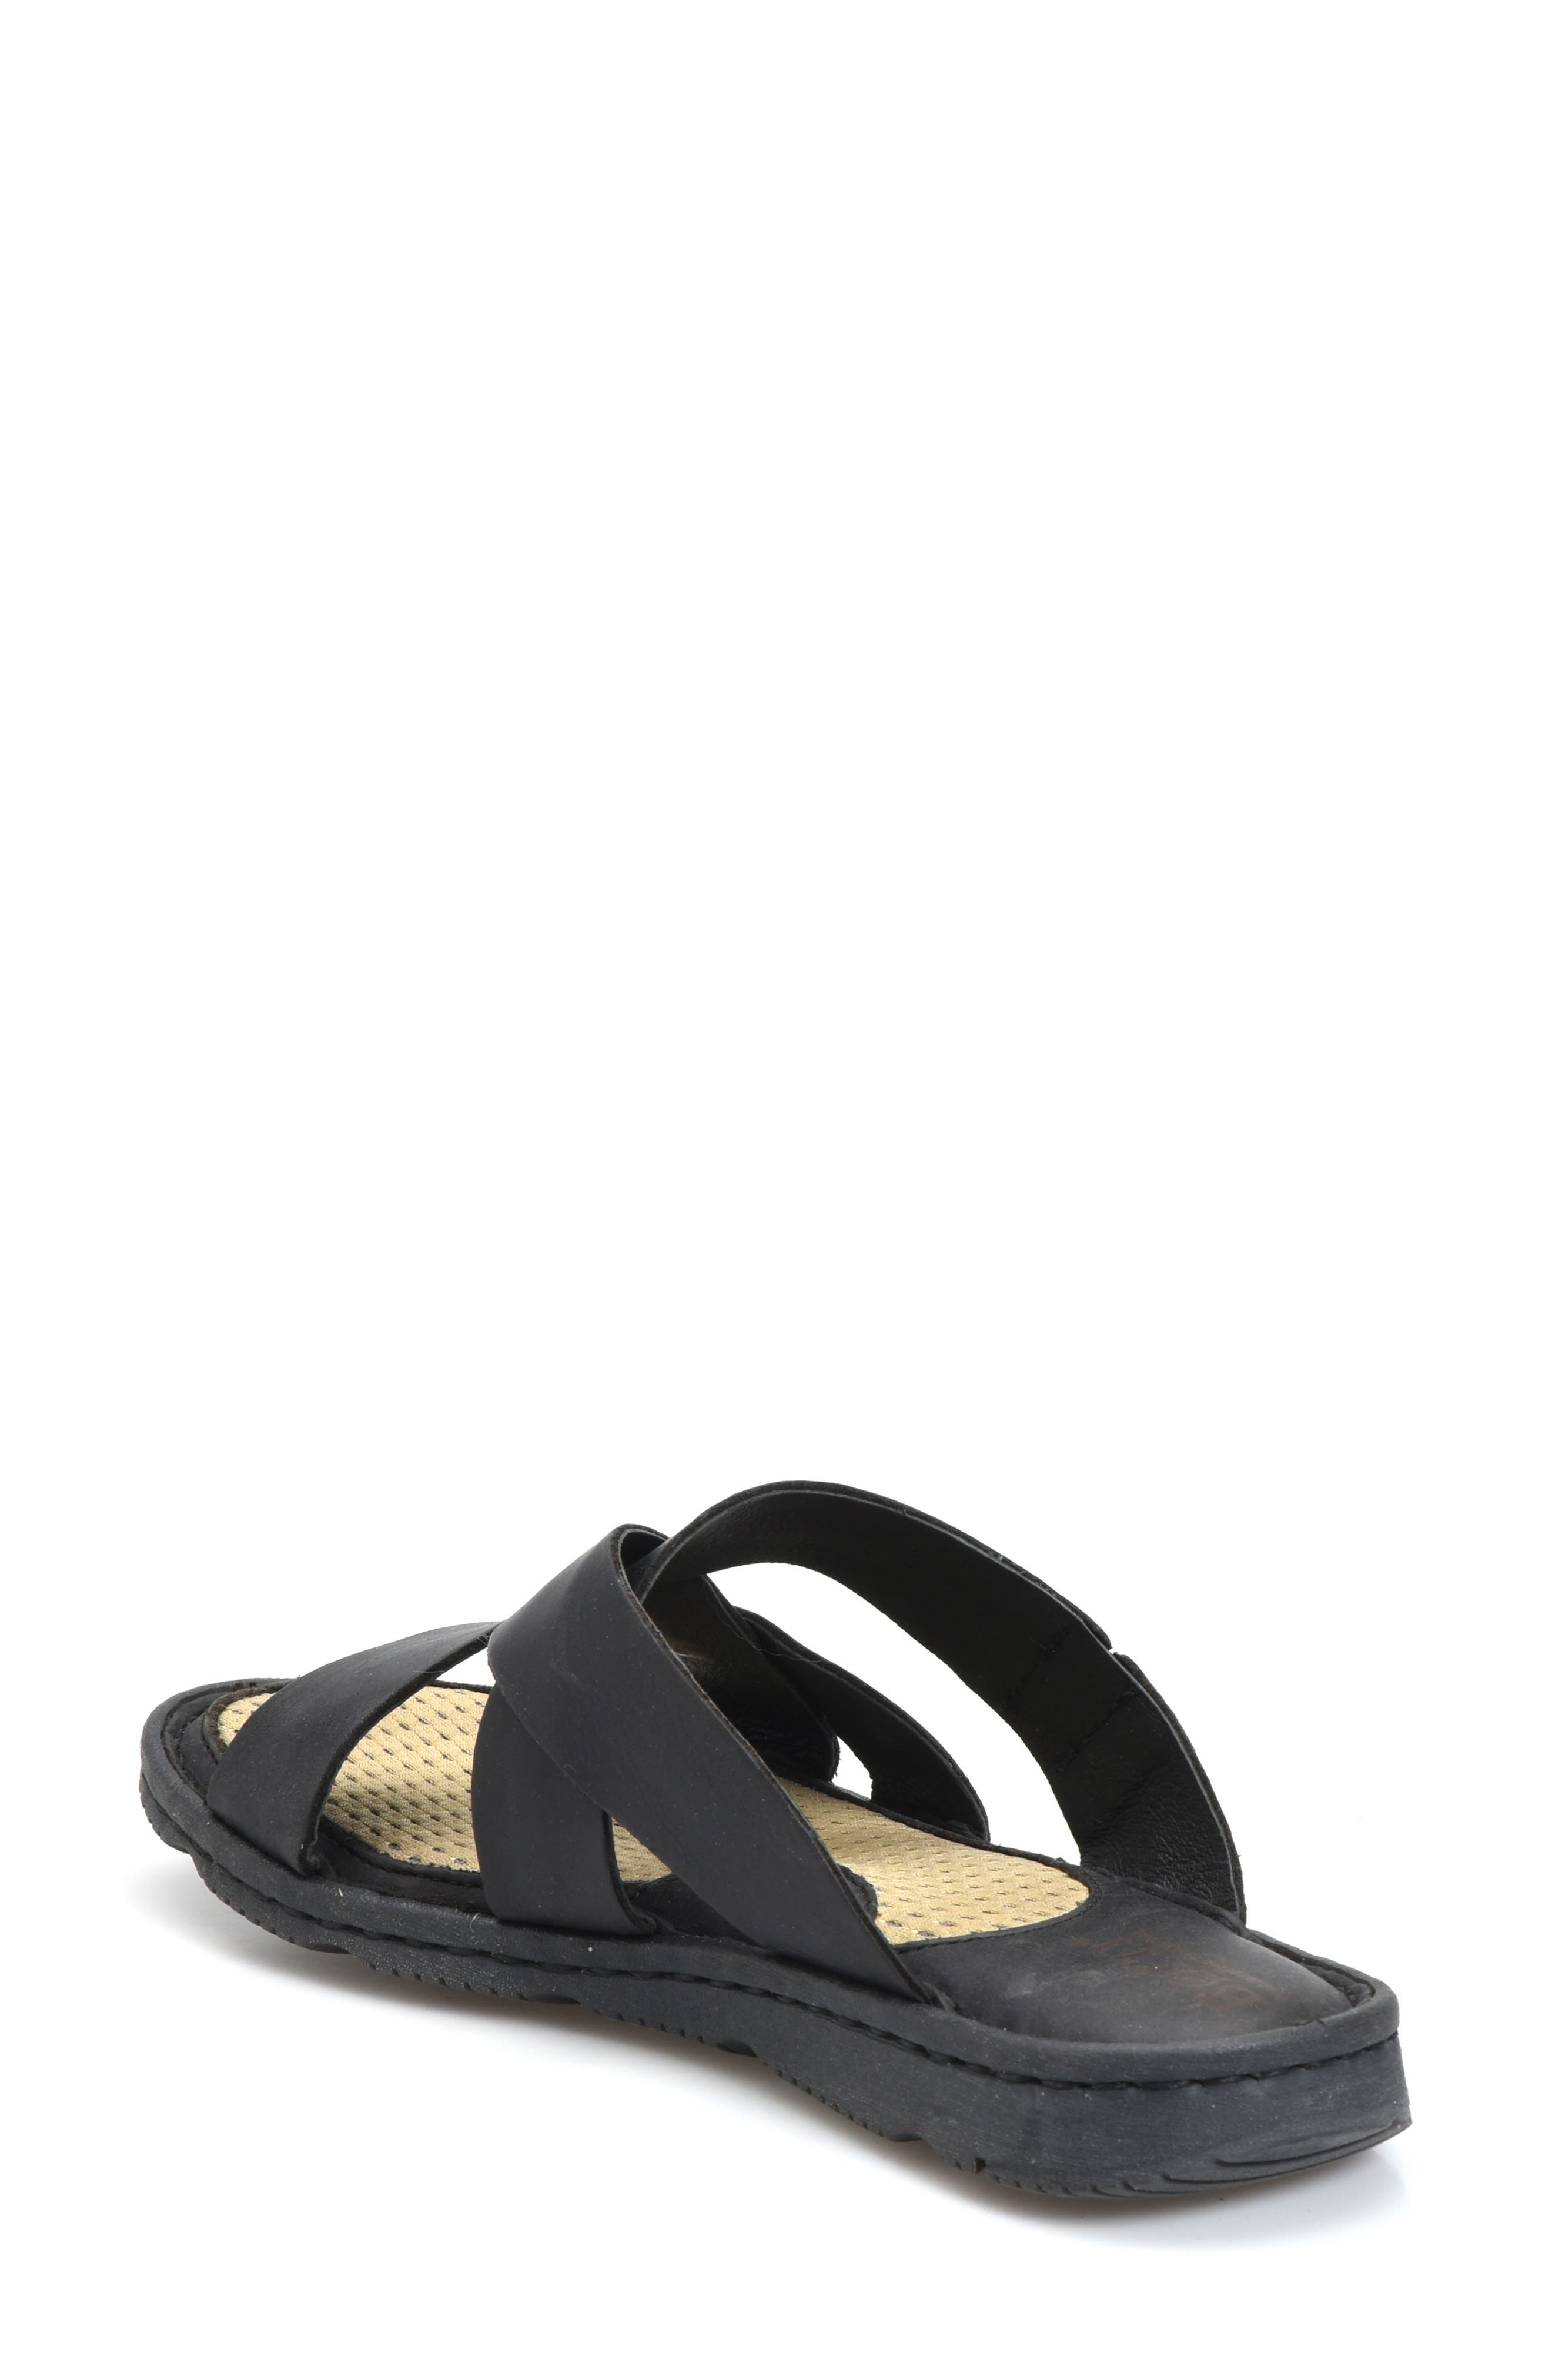 Hayka Asymmetrical Slide Sandal,                             Alternate thumbnail 2, color,                             BLACK LEATHER